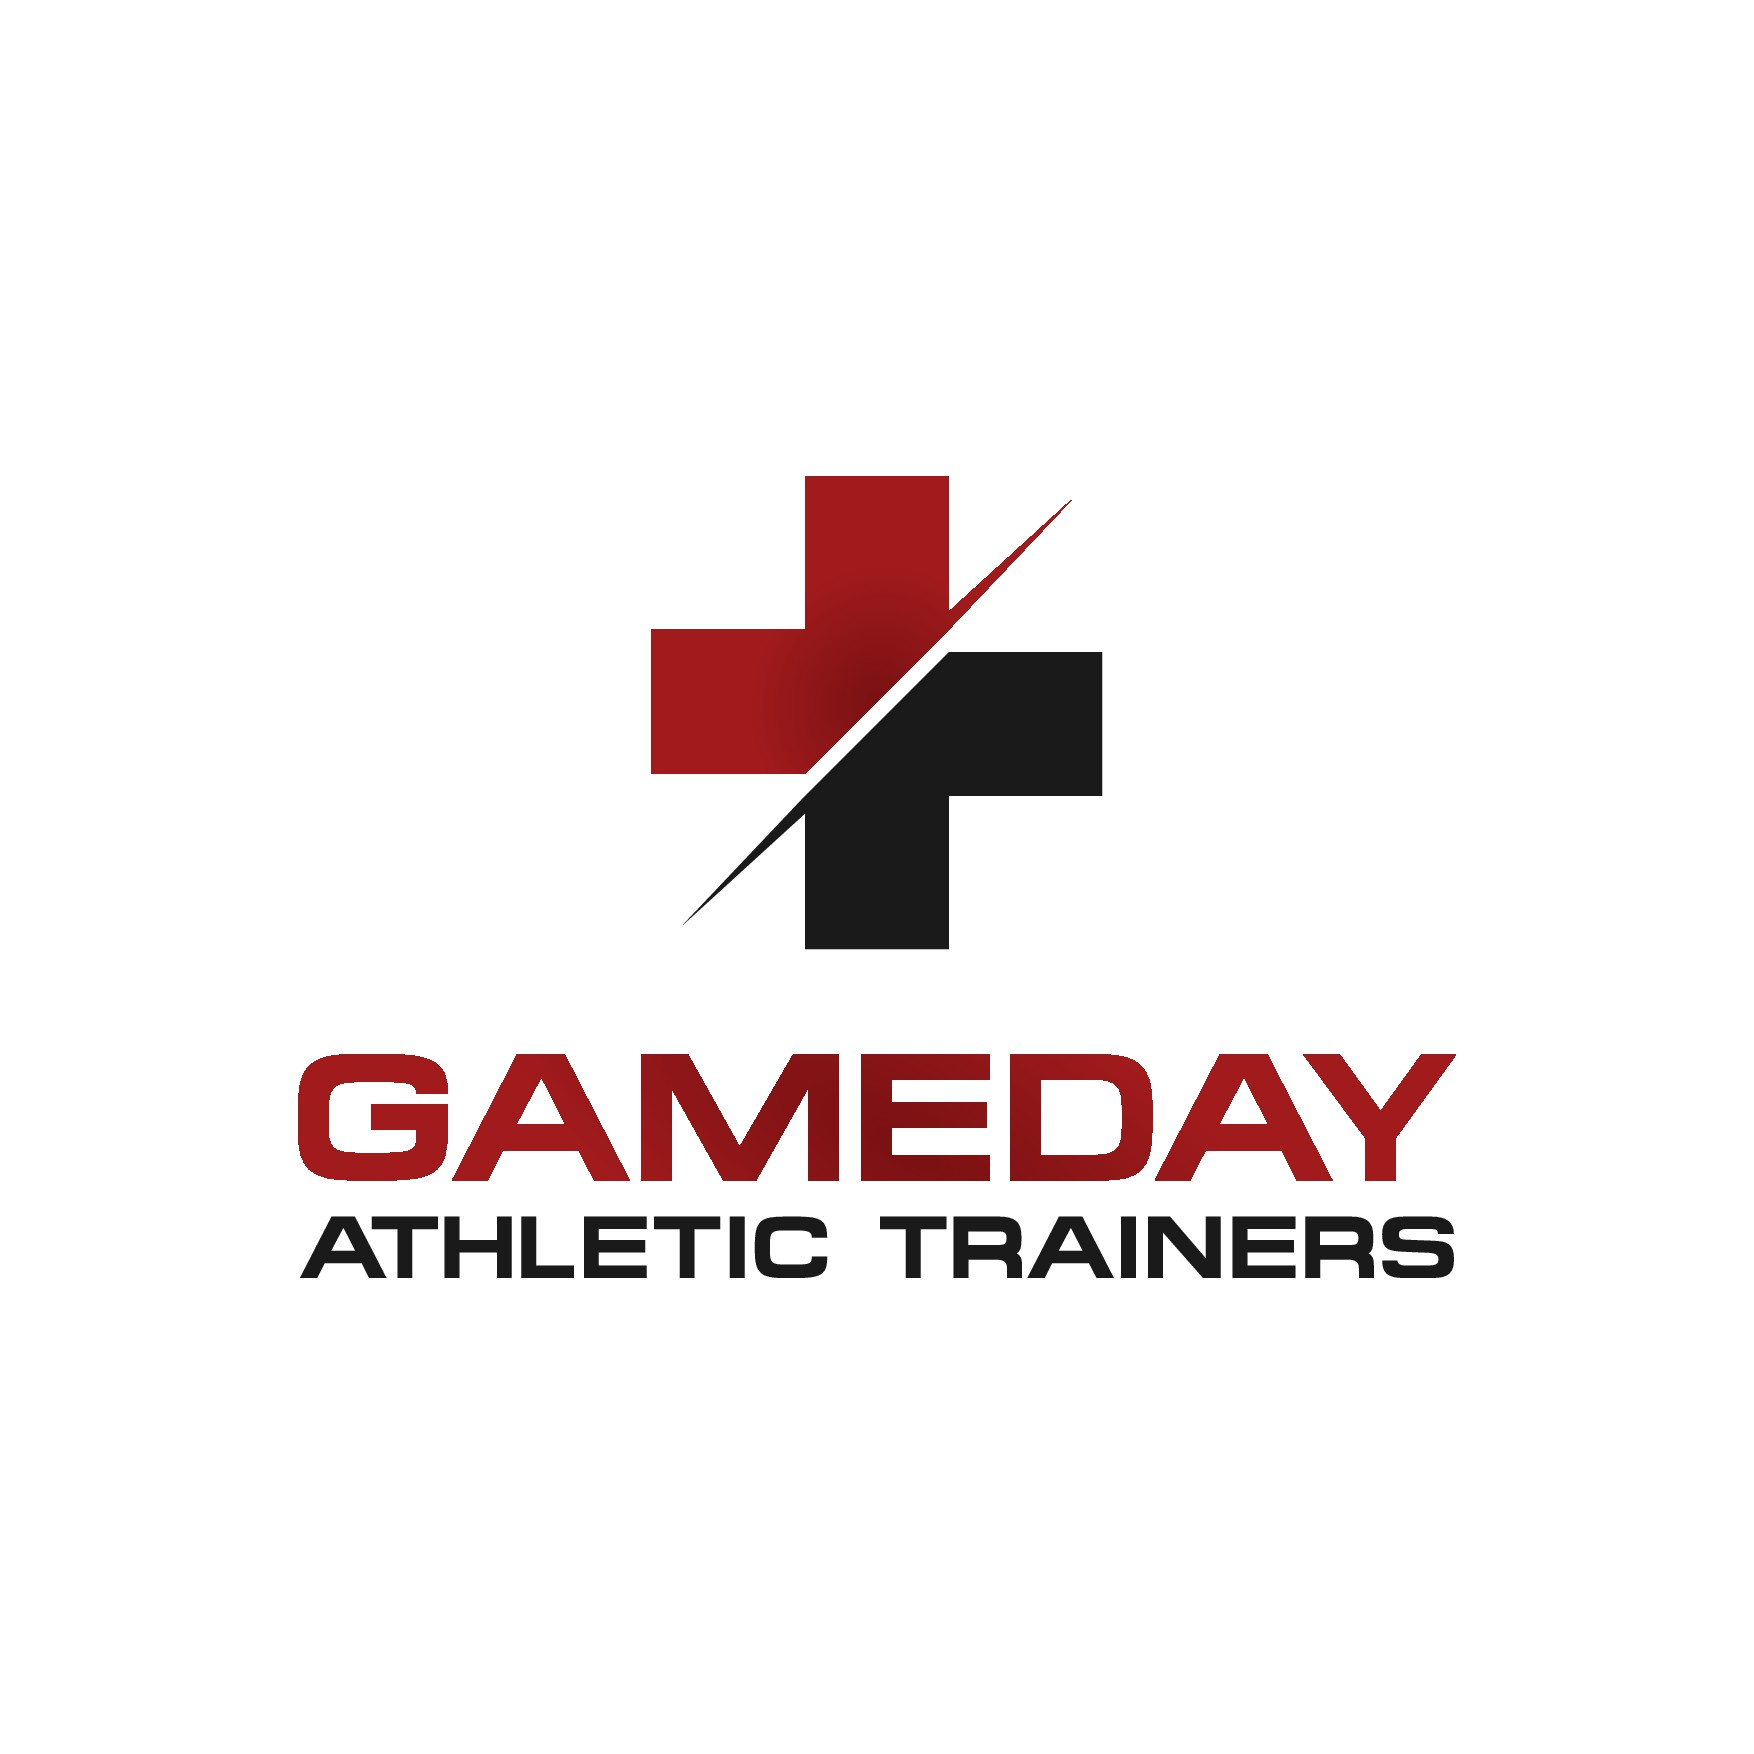 Create logo for Sports Medicine company